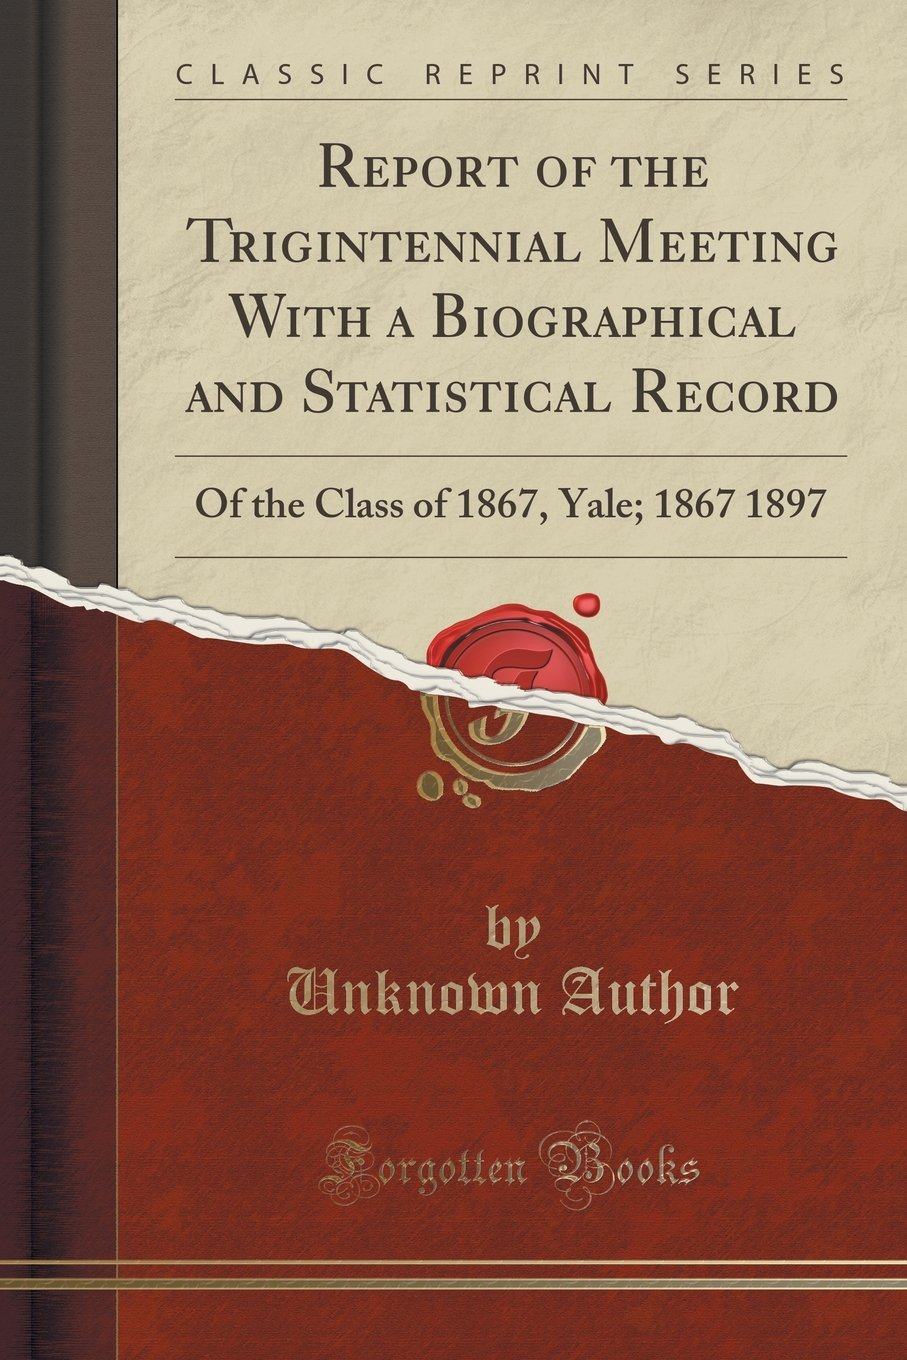 Read Online Report of the Trigintennial Meeting With a Biographical and Statistical Record: Of the Class of 1867, Yale; 1867 1897 (Classic Reprint) ebook